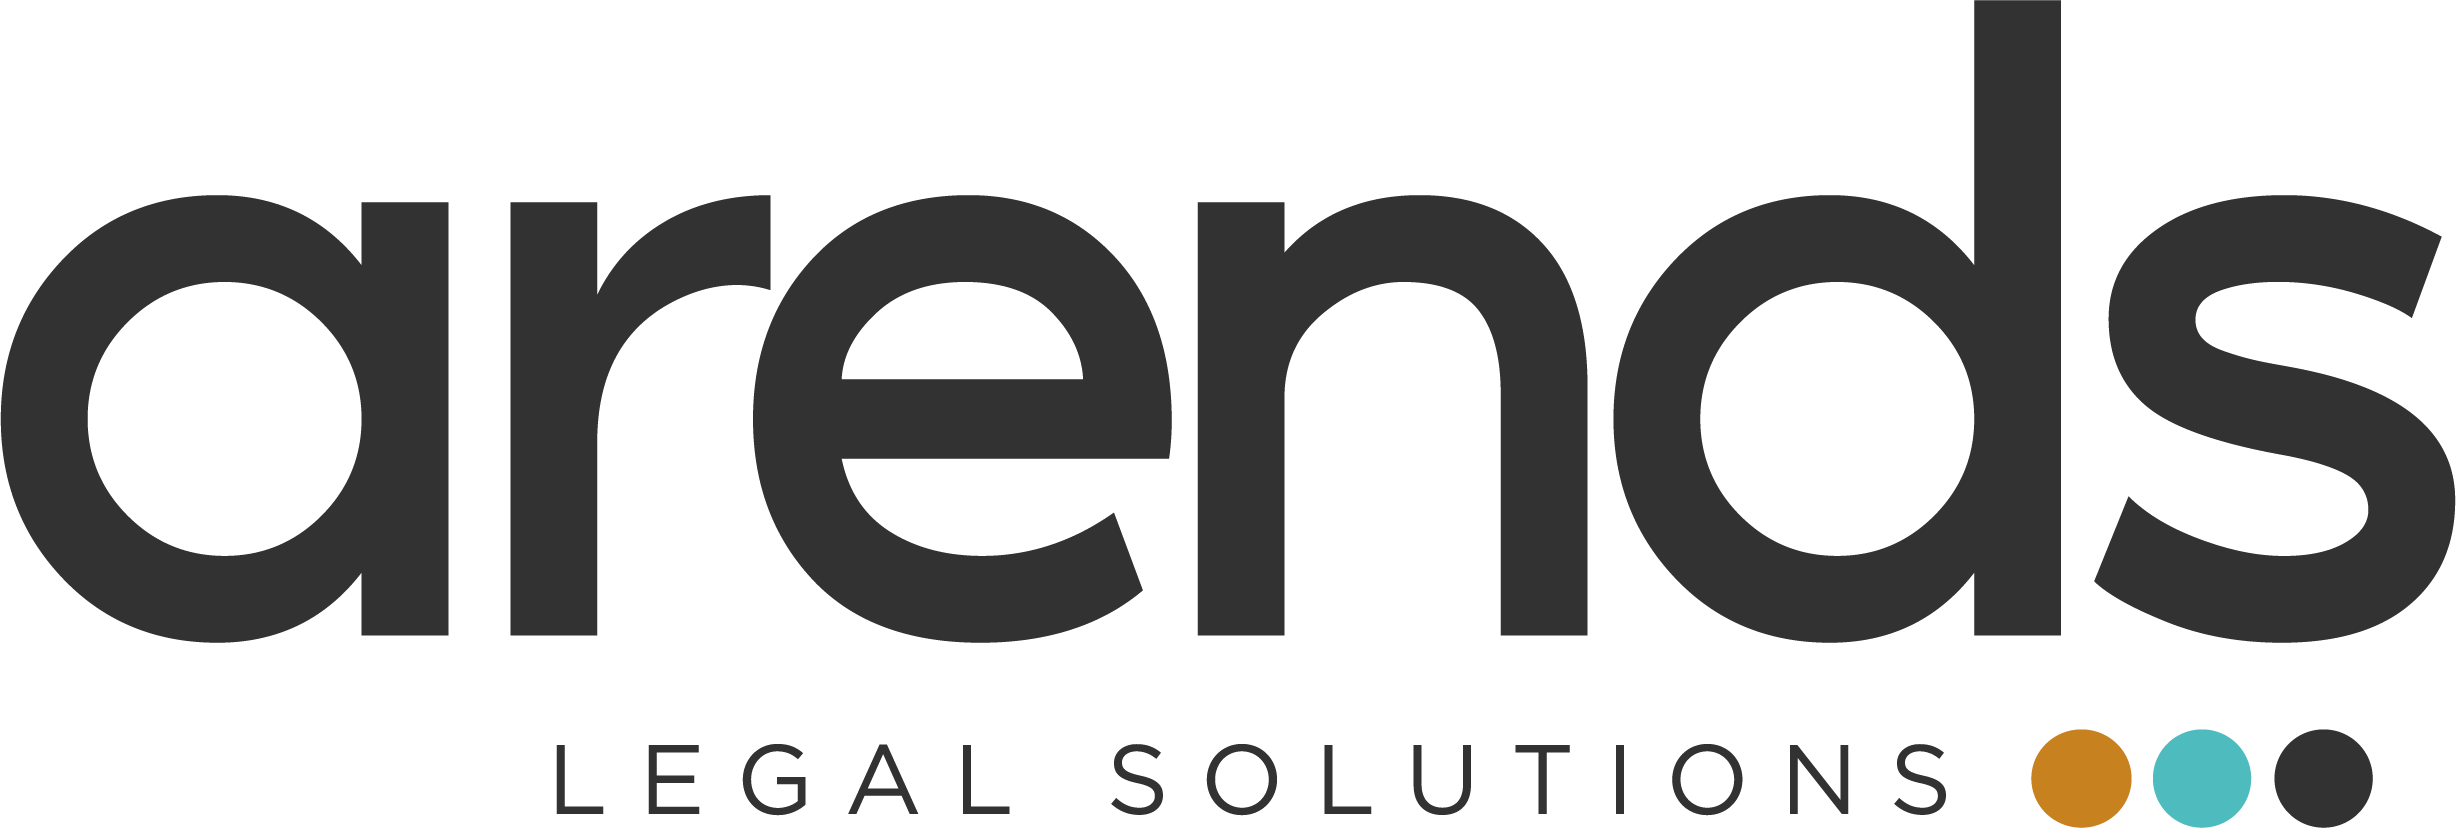 Arends Legal Solutions